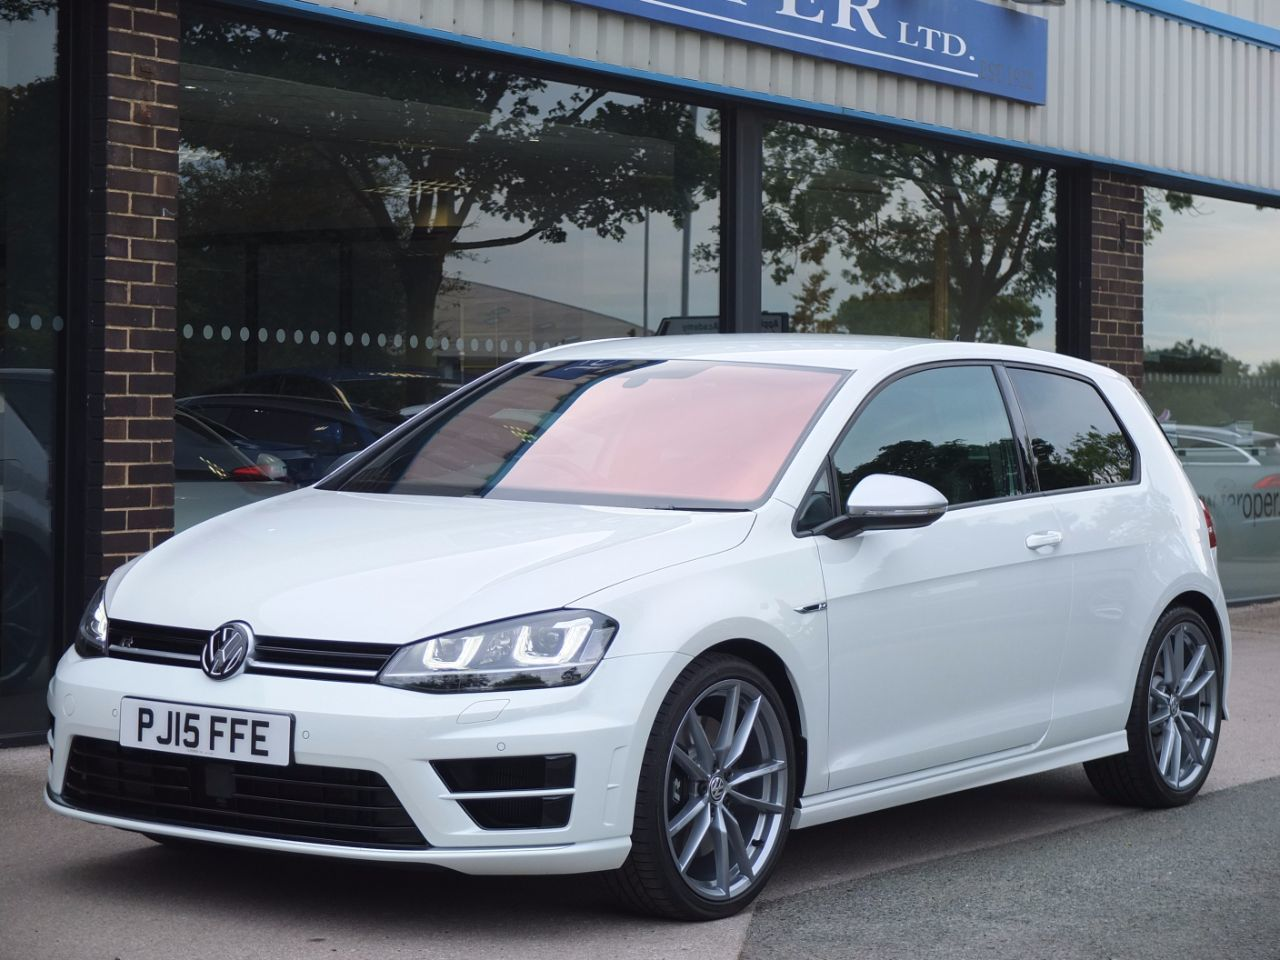 Volkswagen Golf 2.0 TSI R 4MOTION DSG 3 Door (+++Spec) Hatchback Petrol Oryx White Special OrderVolkswagen Golf 2.0 TSI R 4MOTION DSG 3 Door (+++Spec) Hatchback Petrol Oryx White Special Order at fa Roper Ltd Bradford